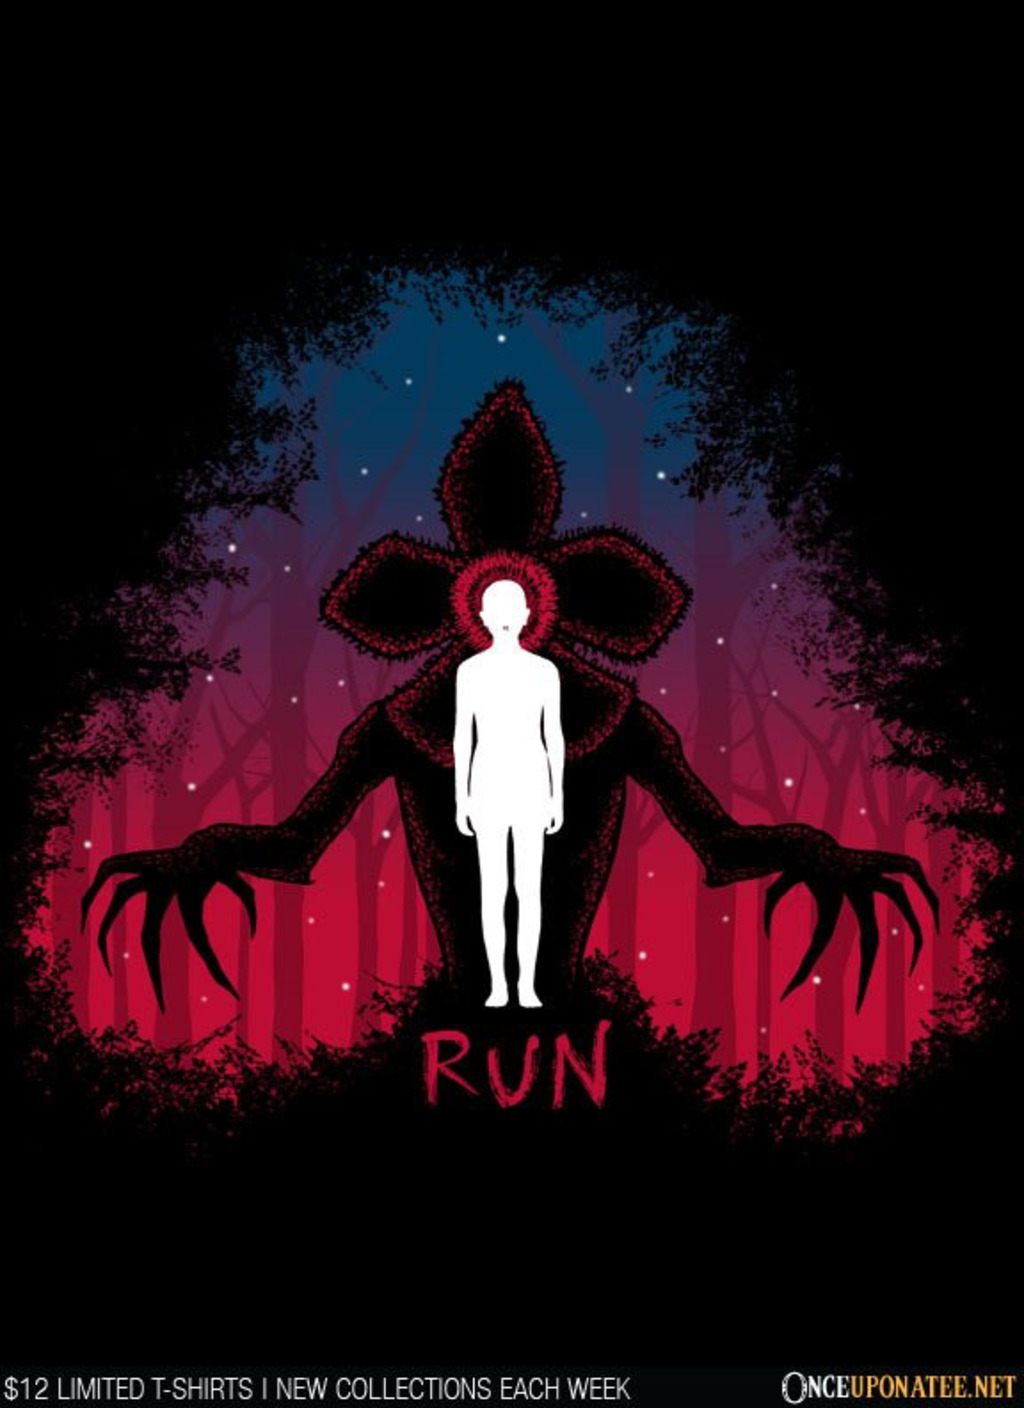 Once Upon a Tee: I'm the Monster